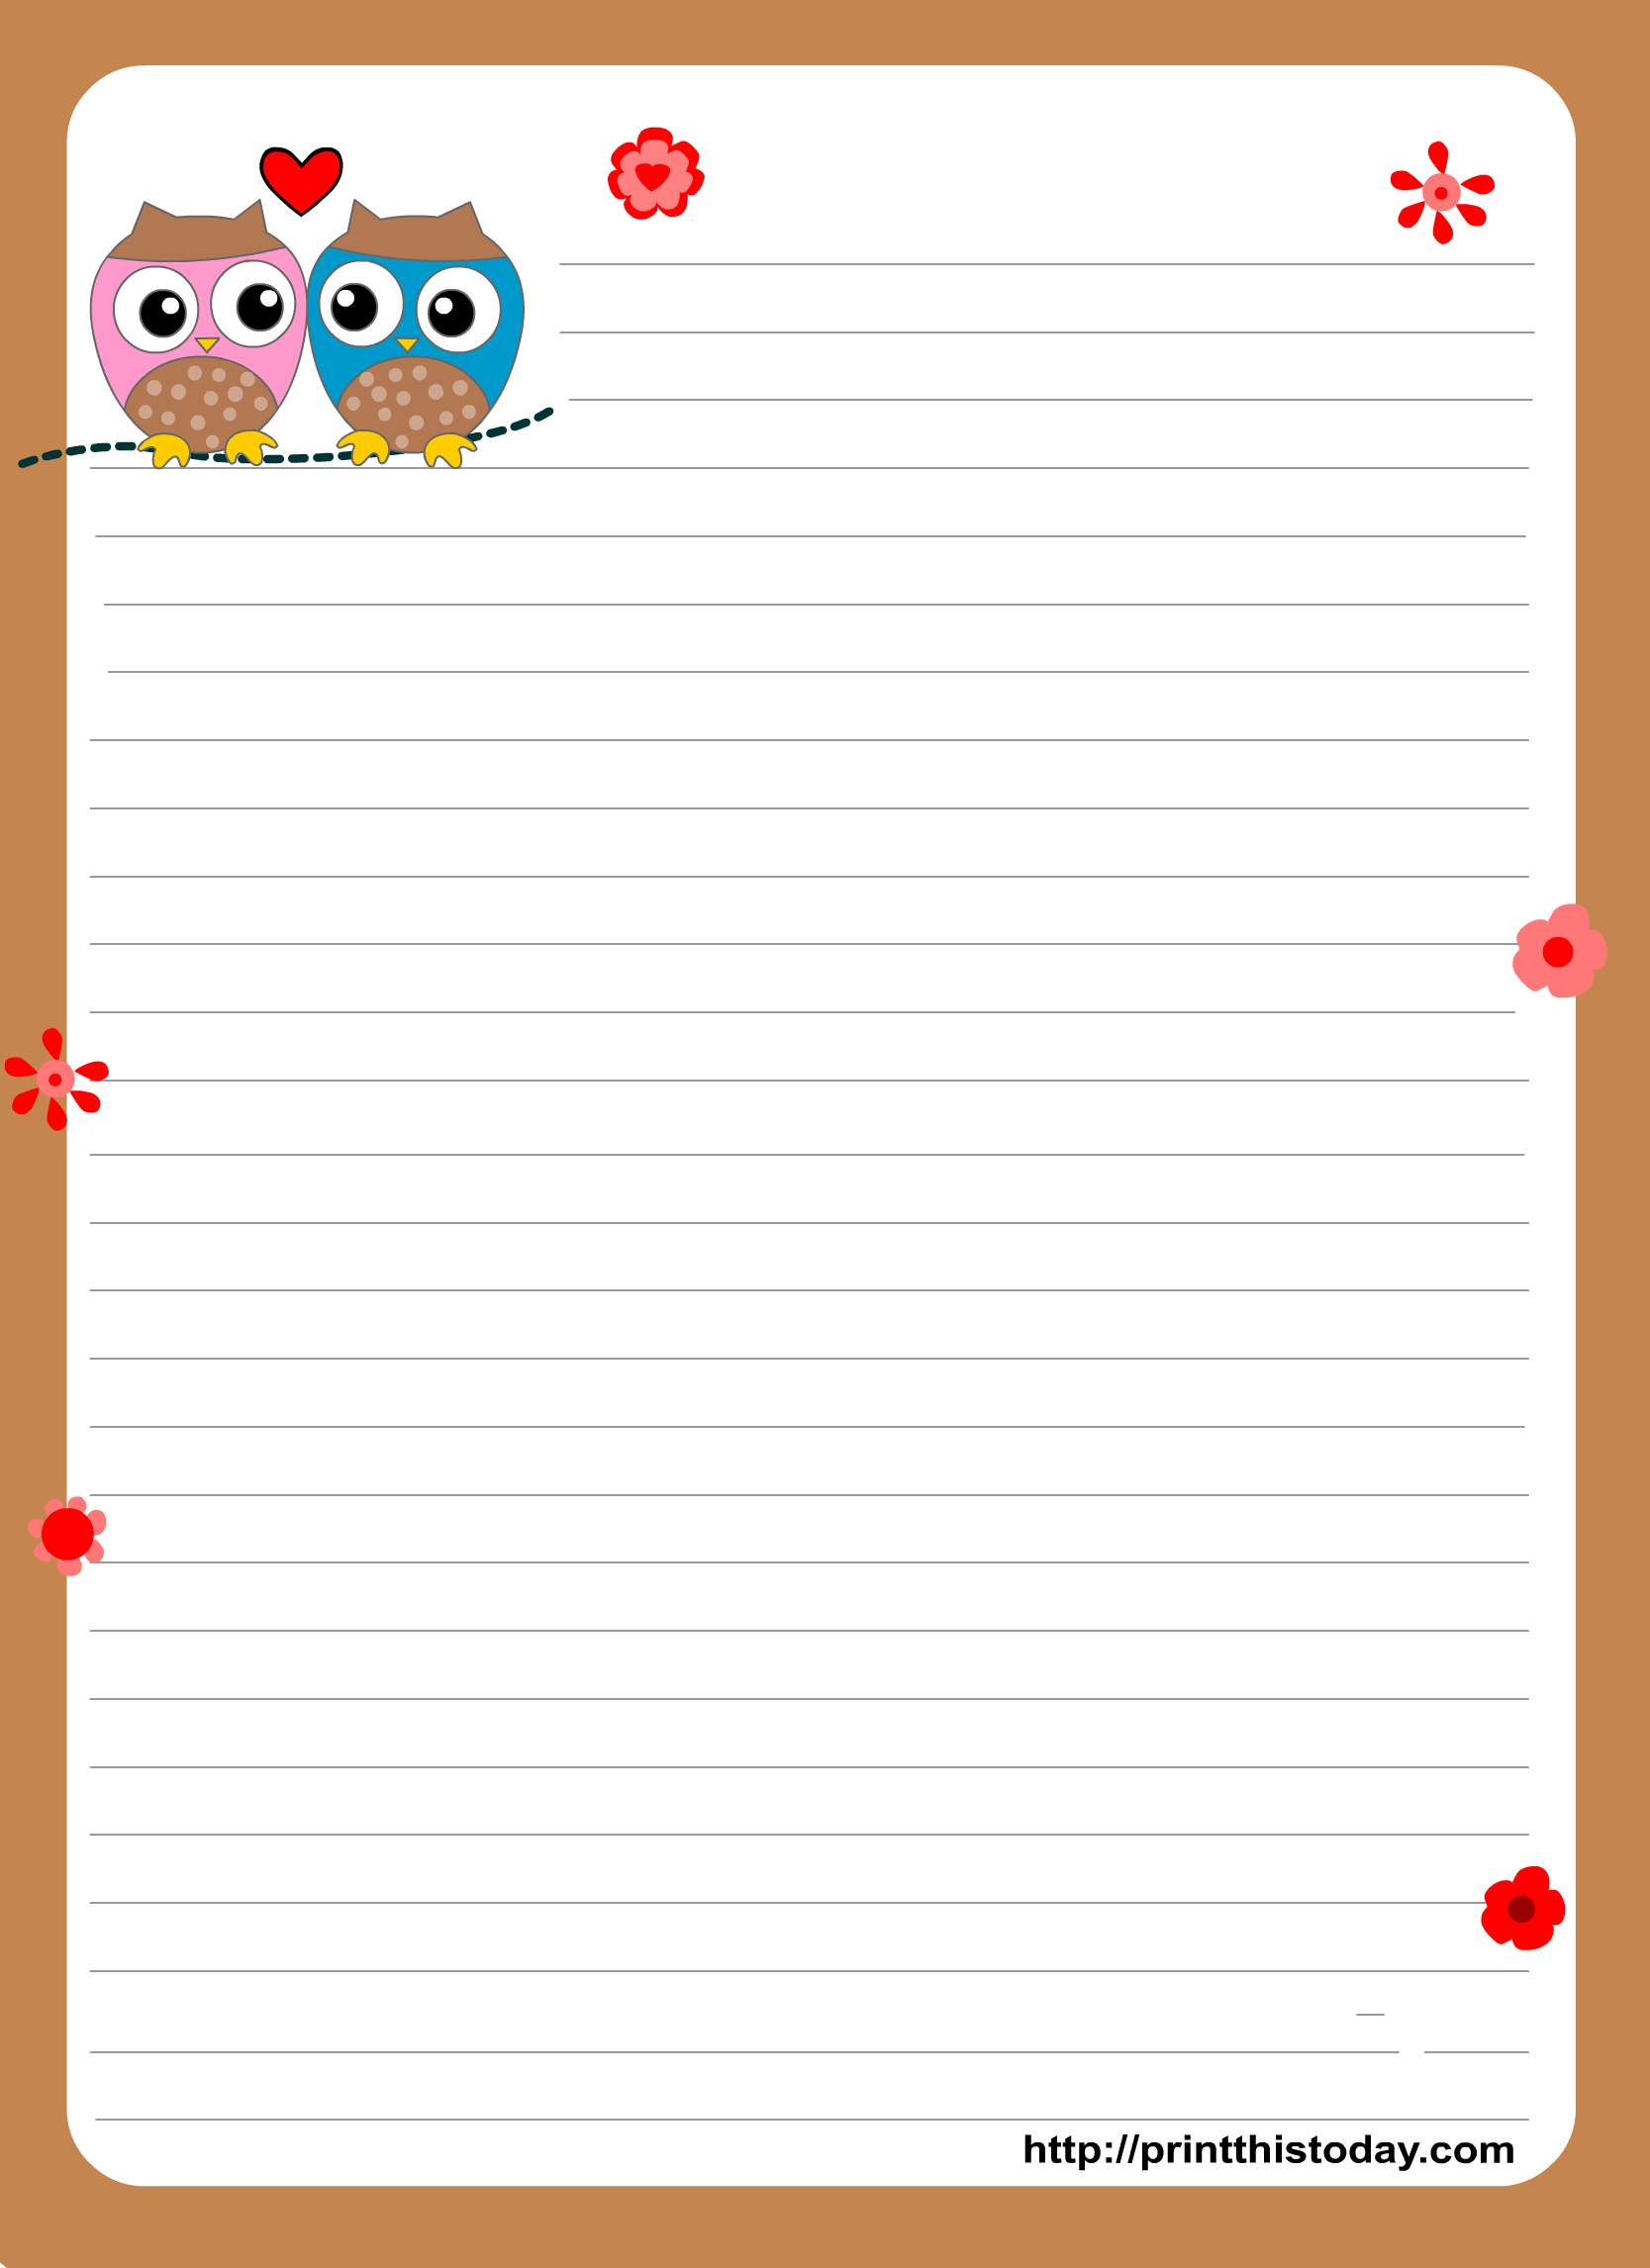 Free Free Printable Border Designs For Paper, Download Free Clip Art - Free Printable Writing Paper With Borders